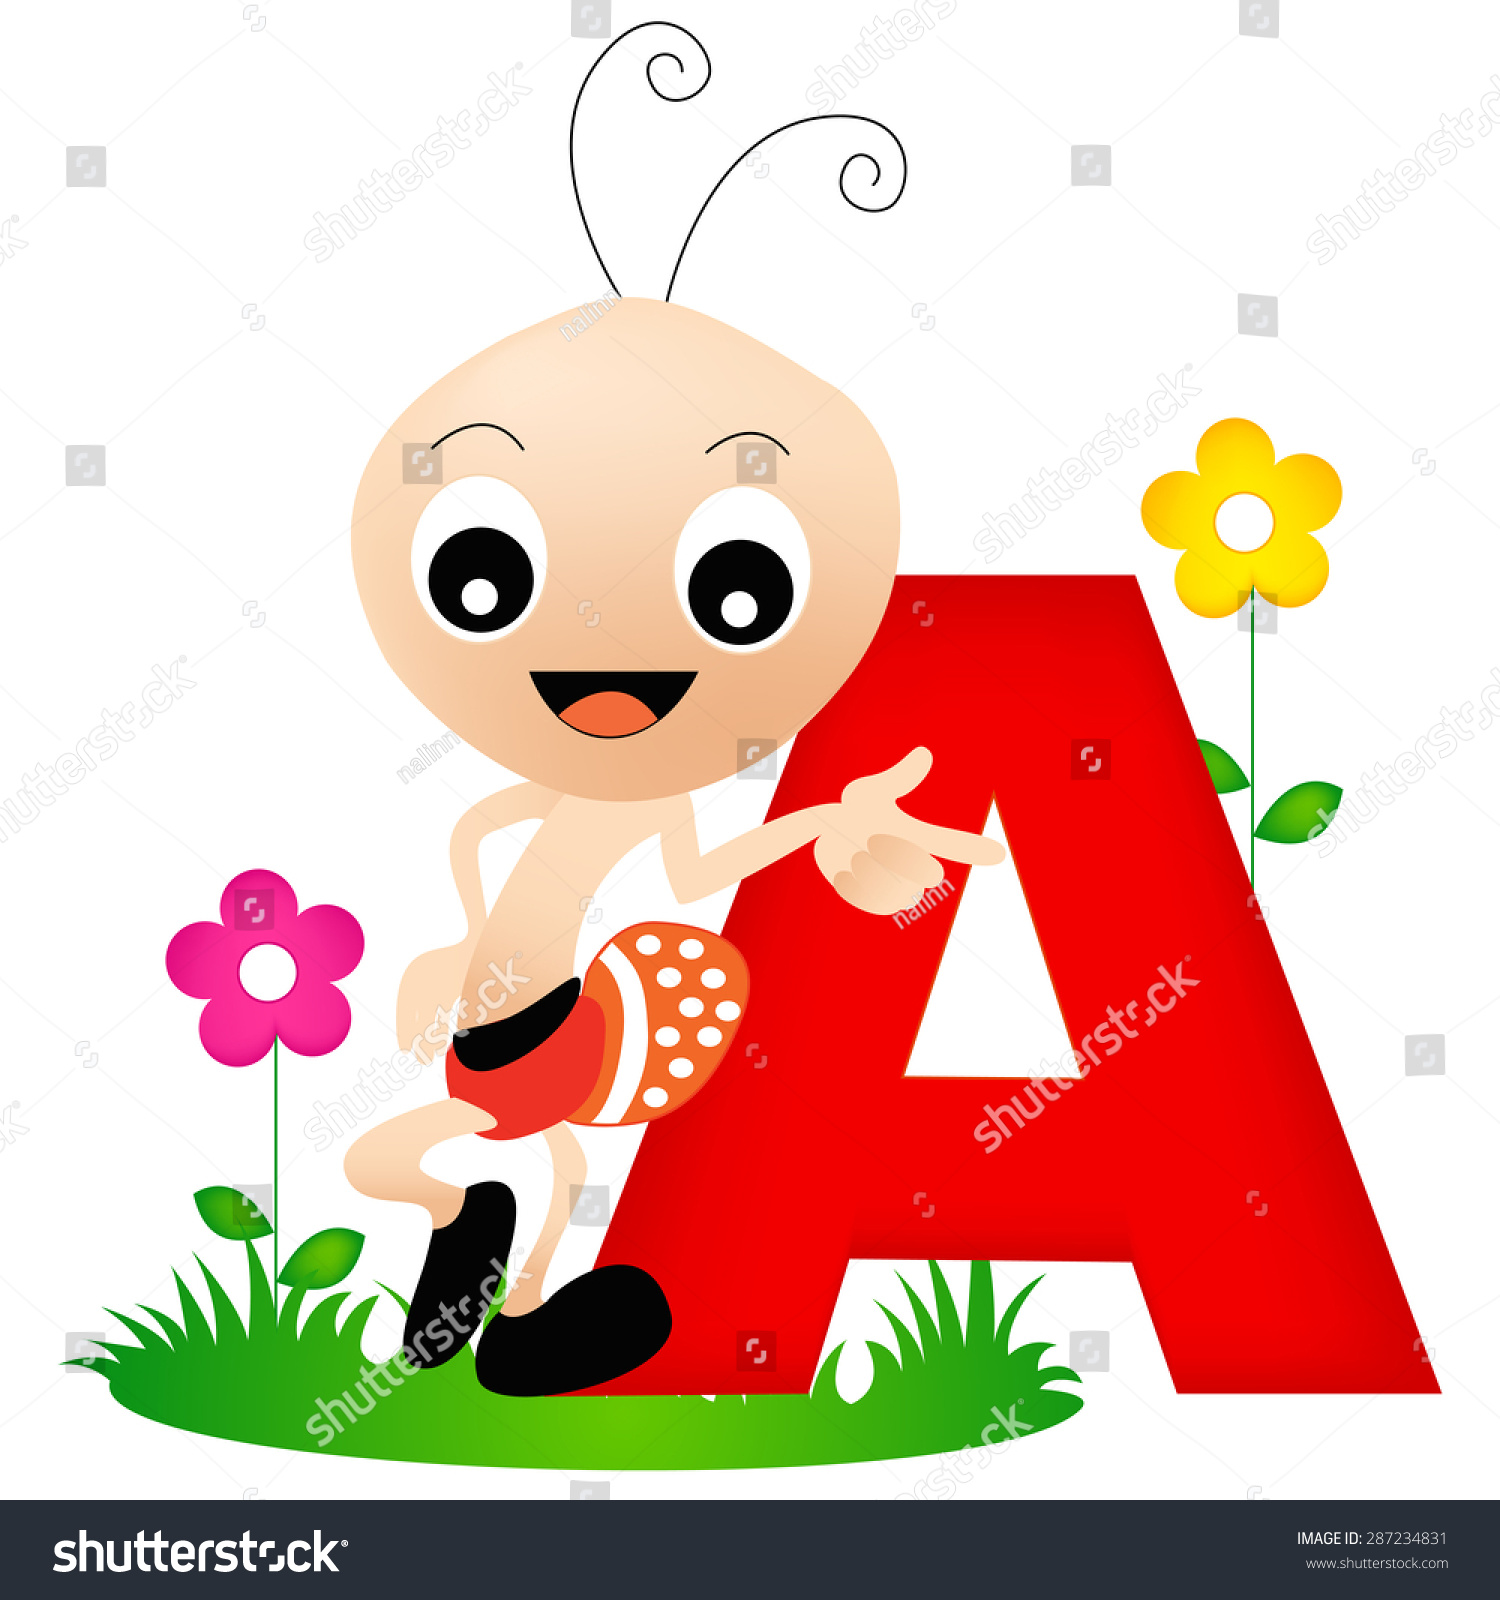 Colorful Animal Alphabet Letter Cute Ant Stock Vector